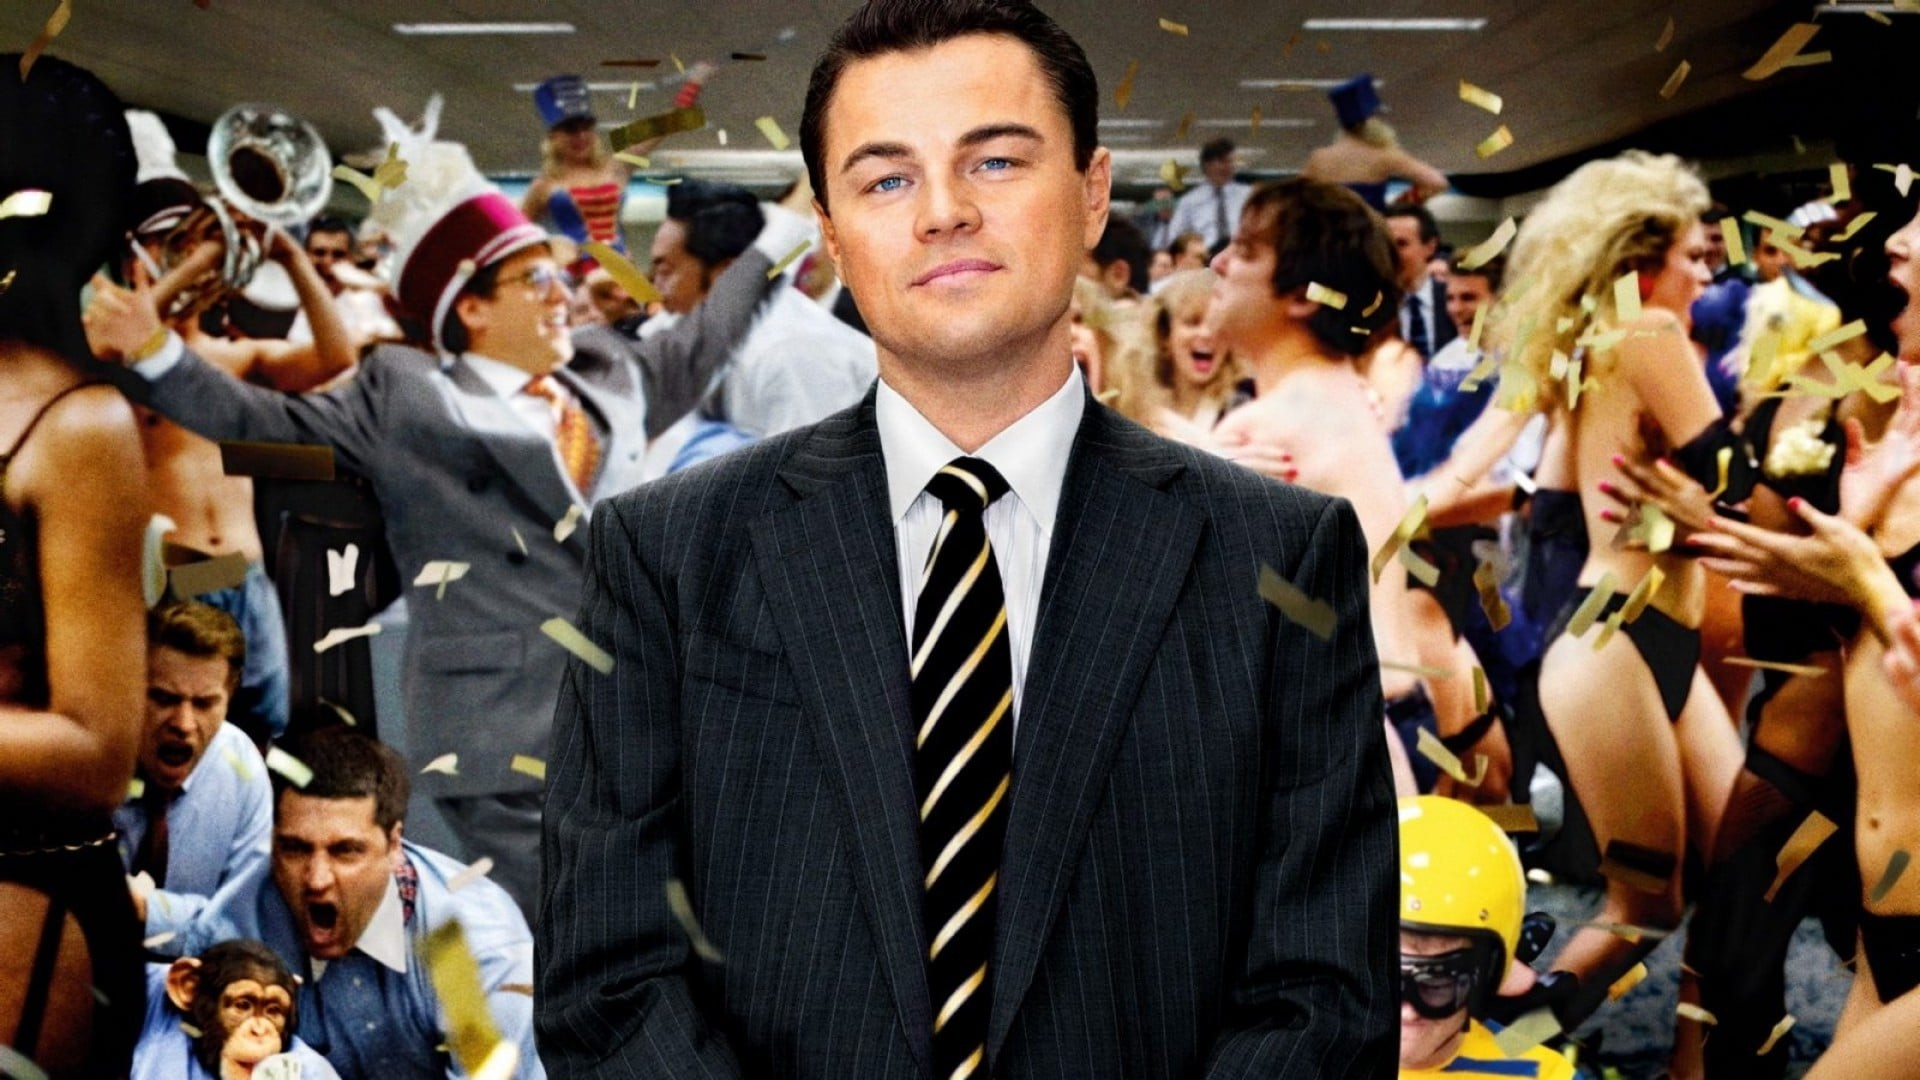 Wallpaper of Leonardo DiCaprio The Wolf of Wall Street for iPad